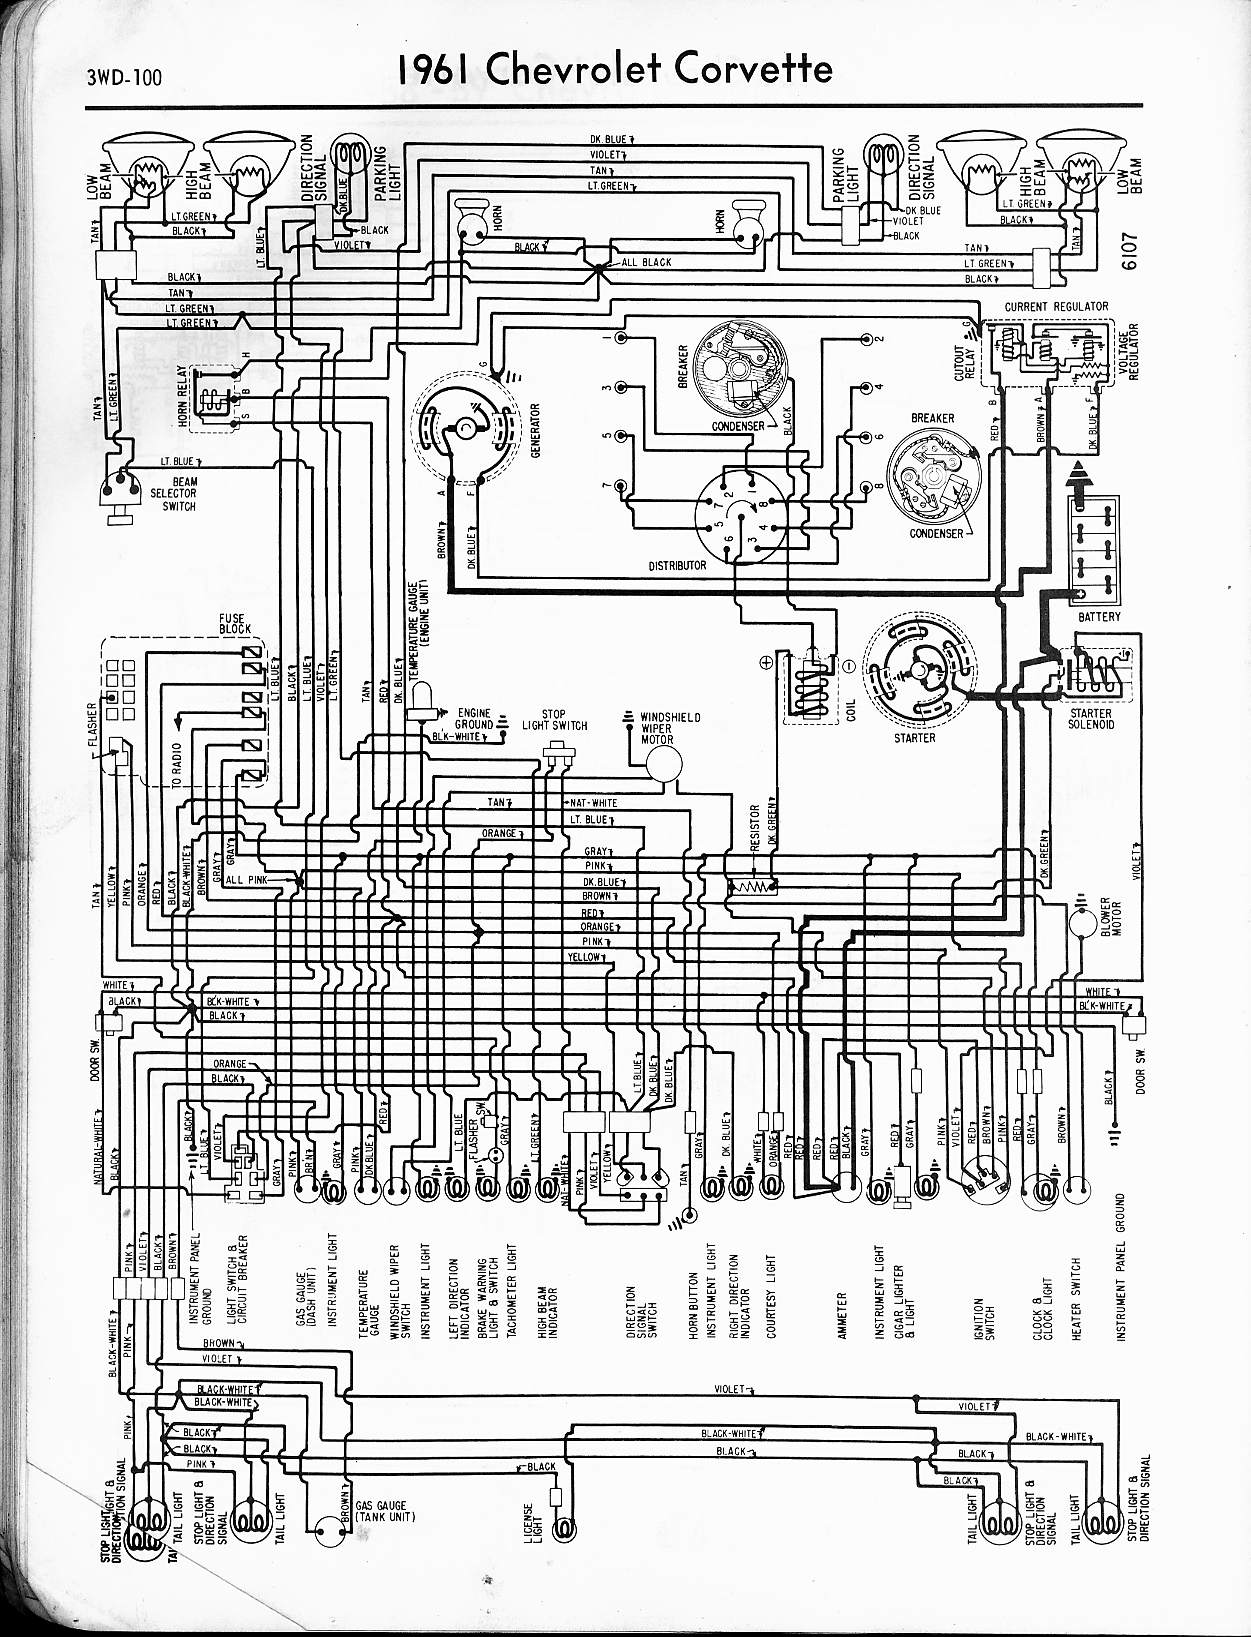 MWireChev61_3WD 100 57 65 chevy wiring diagrams 1960 corvette wiring diagram at panicattacktreatment.co